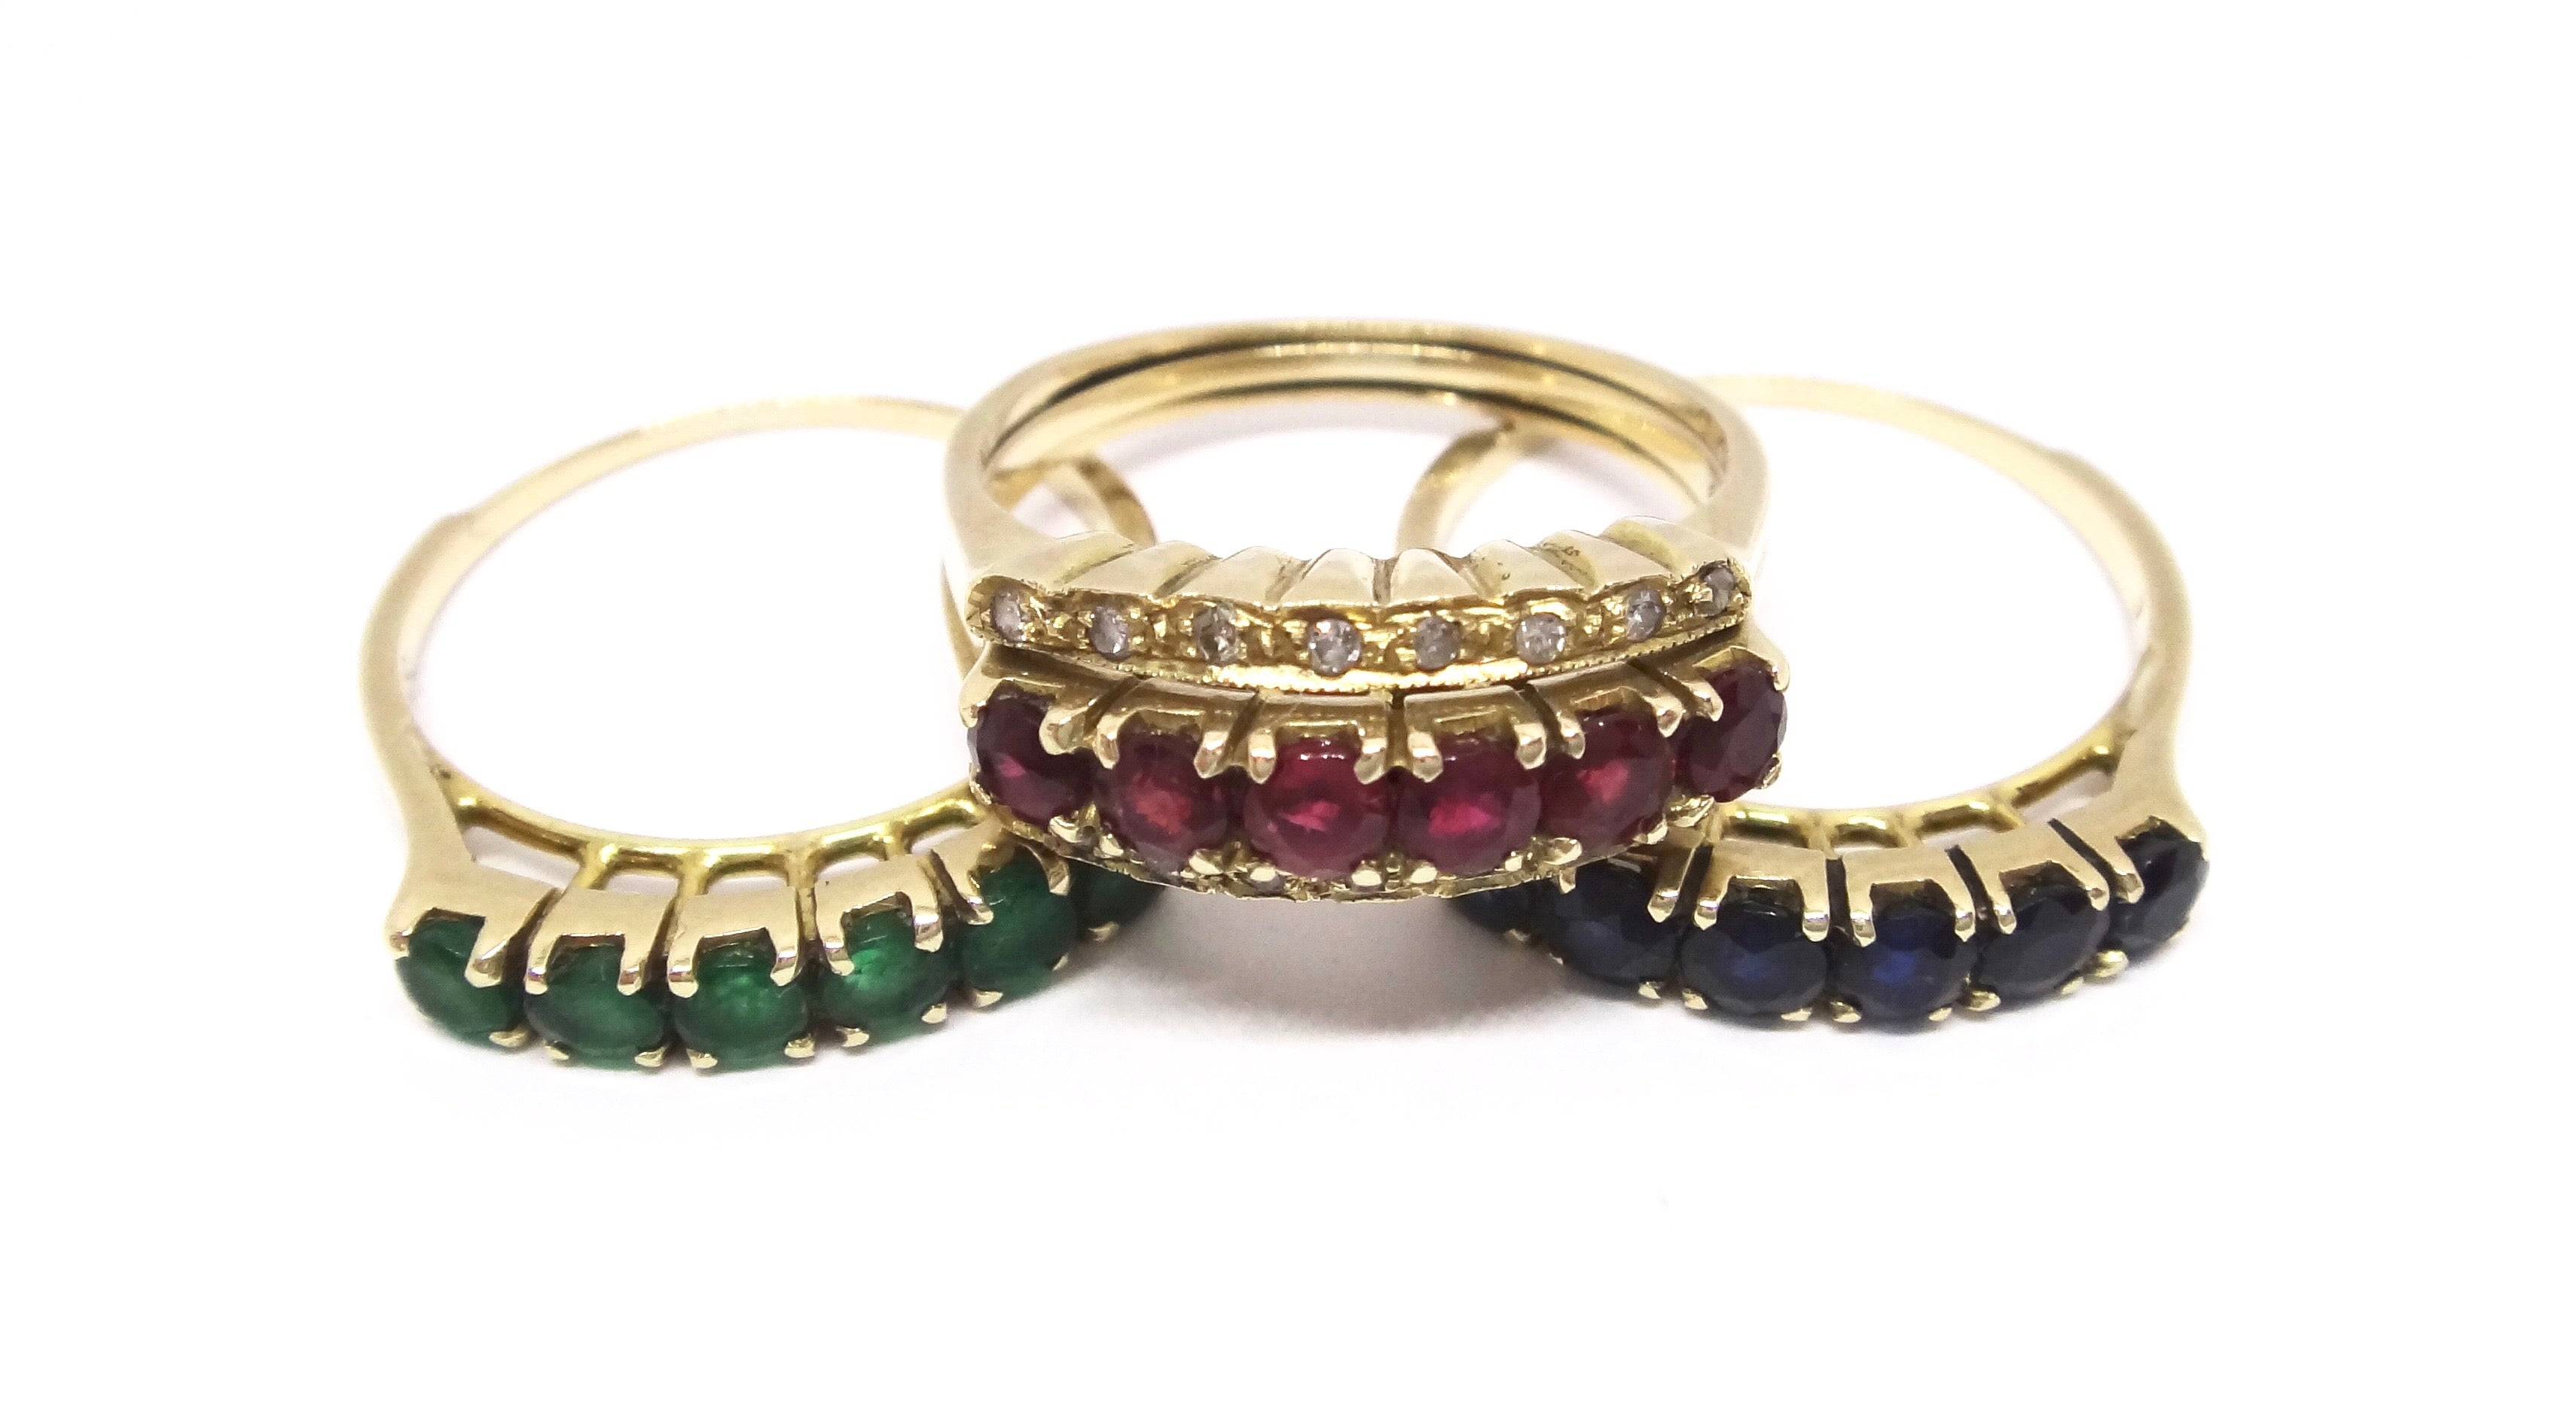 14CT Yellow GOLD, Sapphire, Emerald, Ruby & Diamond Interchangeable Ring Set